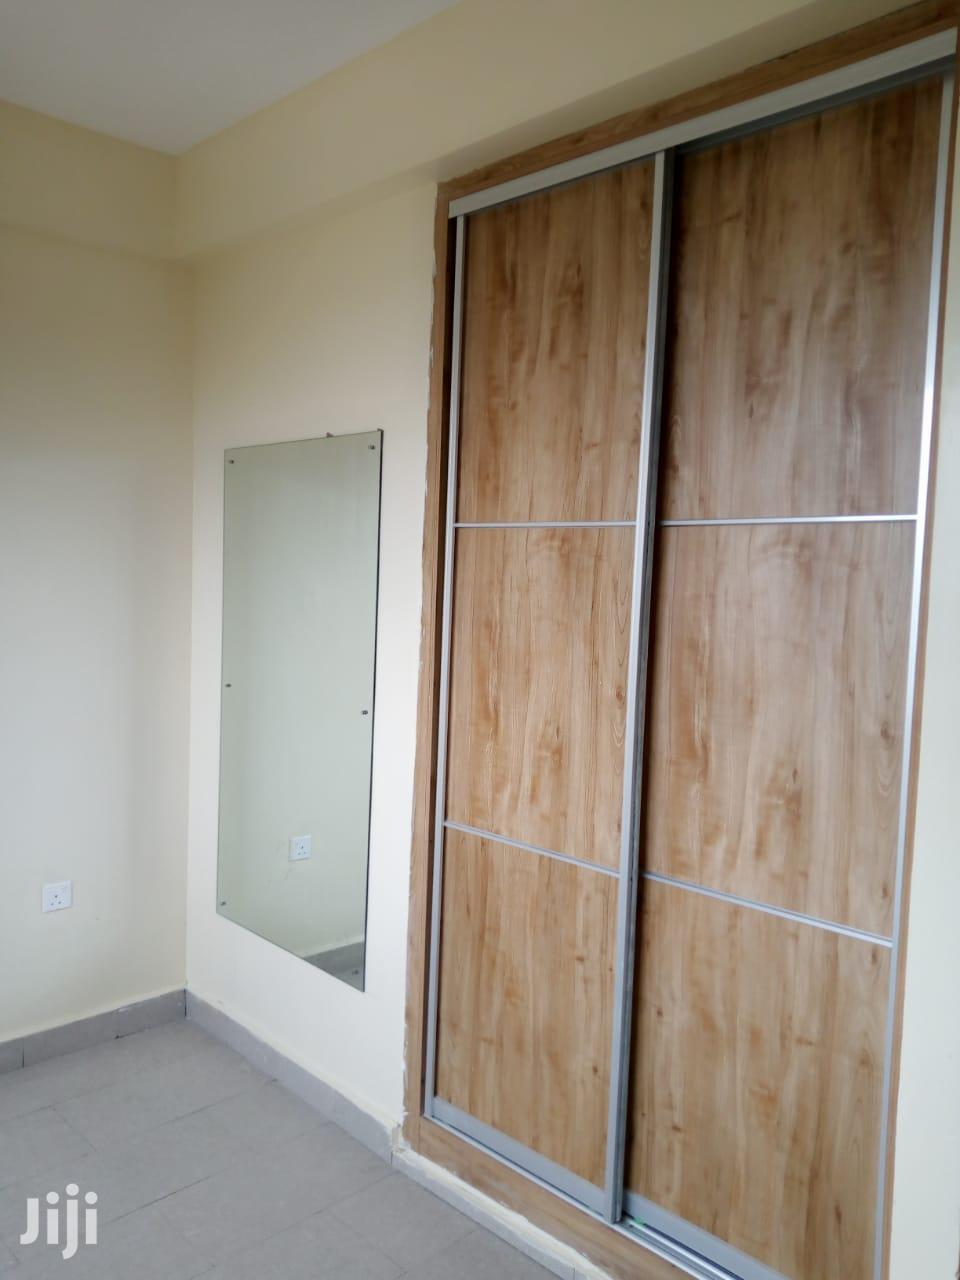 RENTING:New ONE Bedroom Near Junction Mall | Houses & Apartments For Rent for sale in Lavington, Nairobi, Kenya